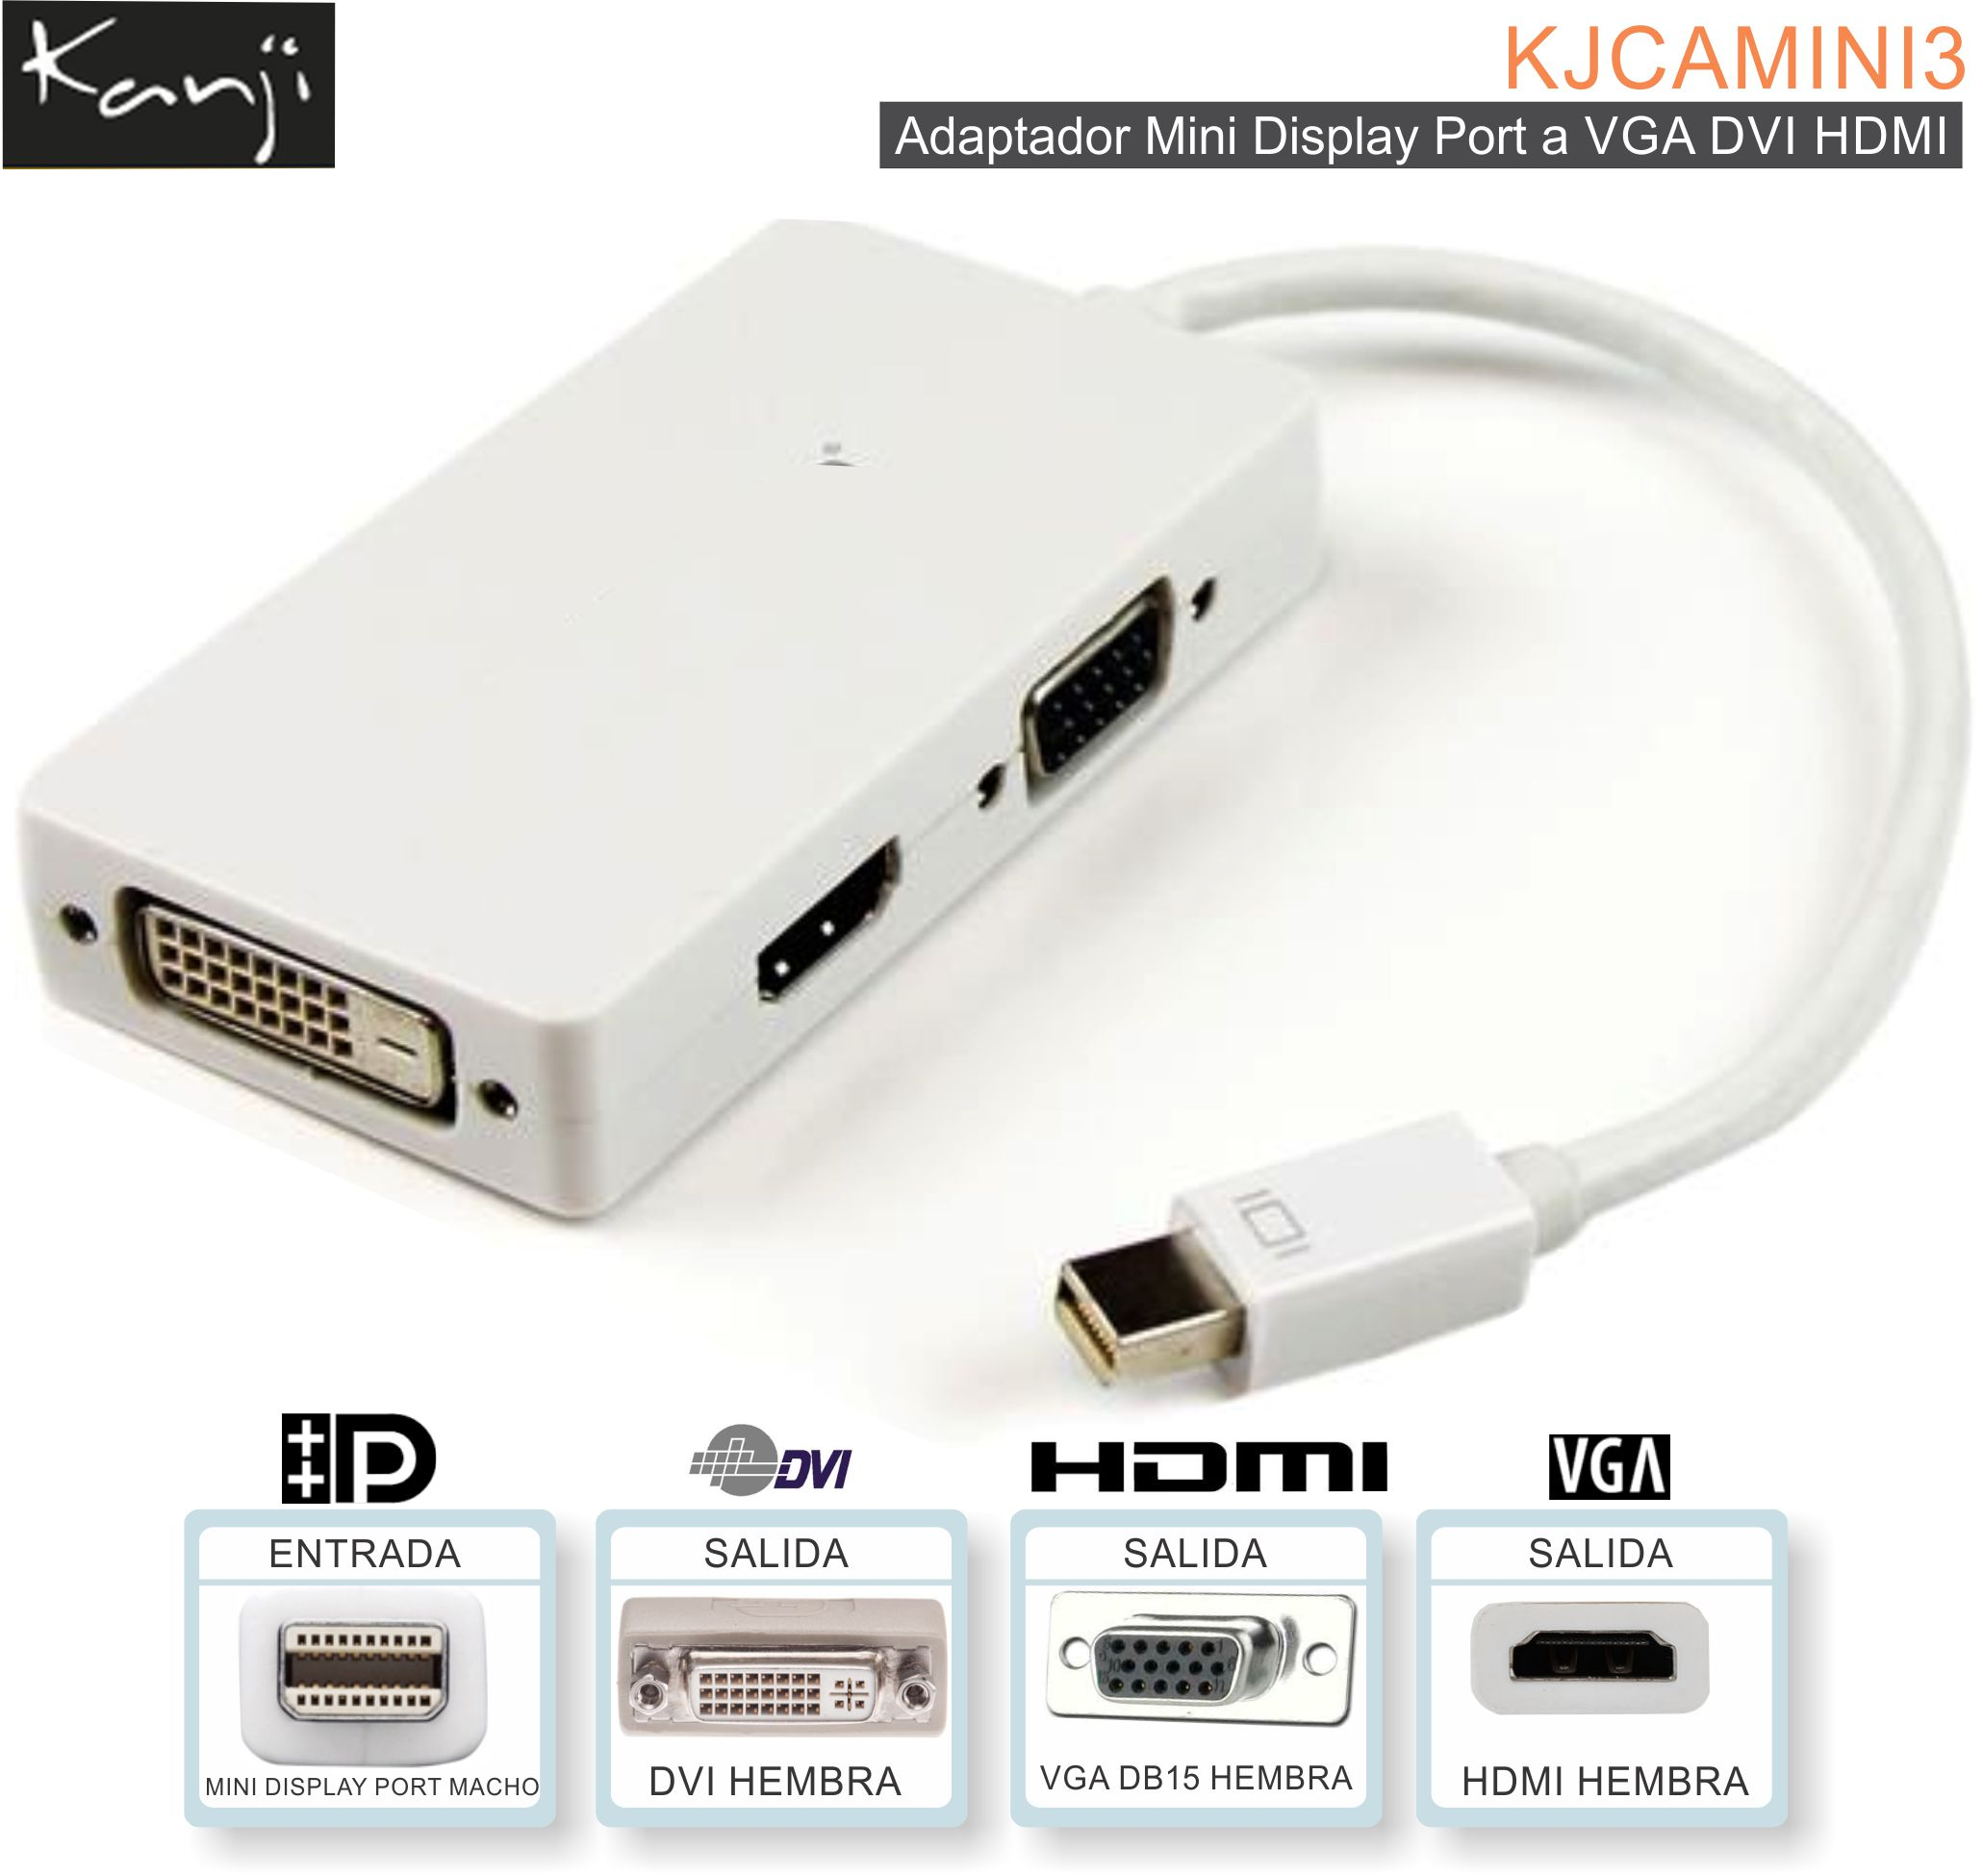 Adaptador Mini Display Port a VGA DVI HDMI KANJI